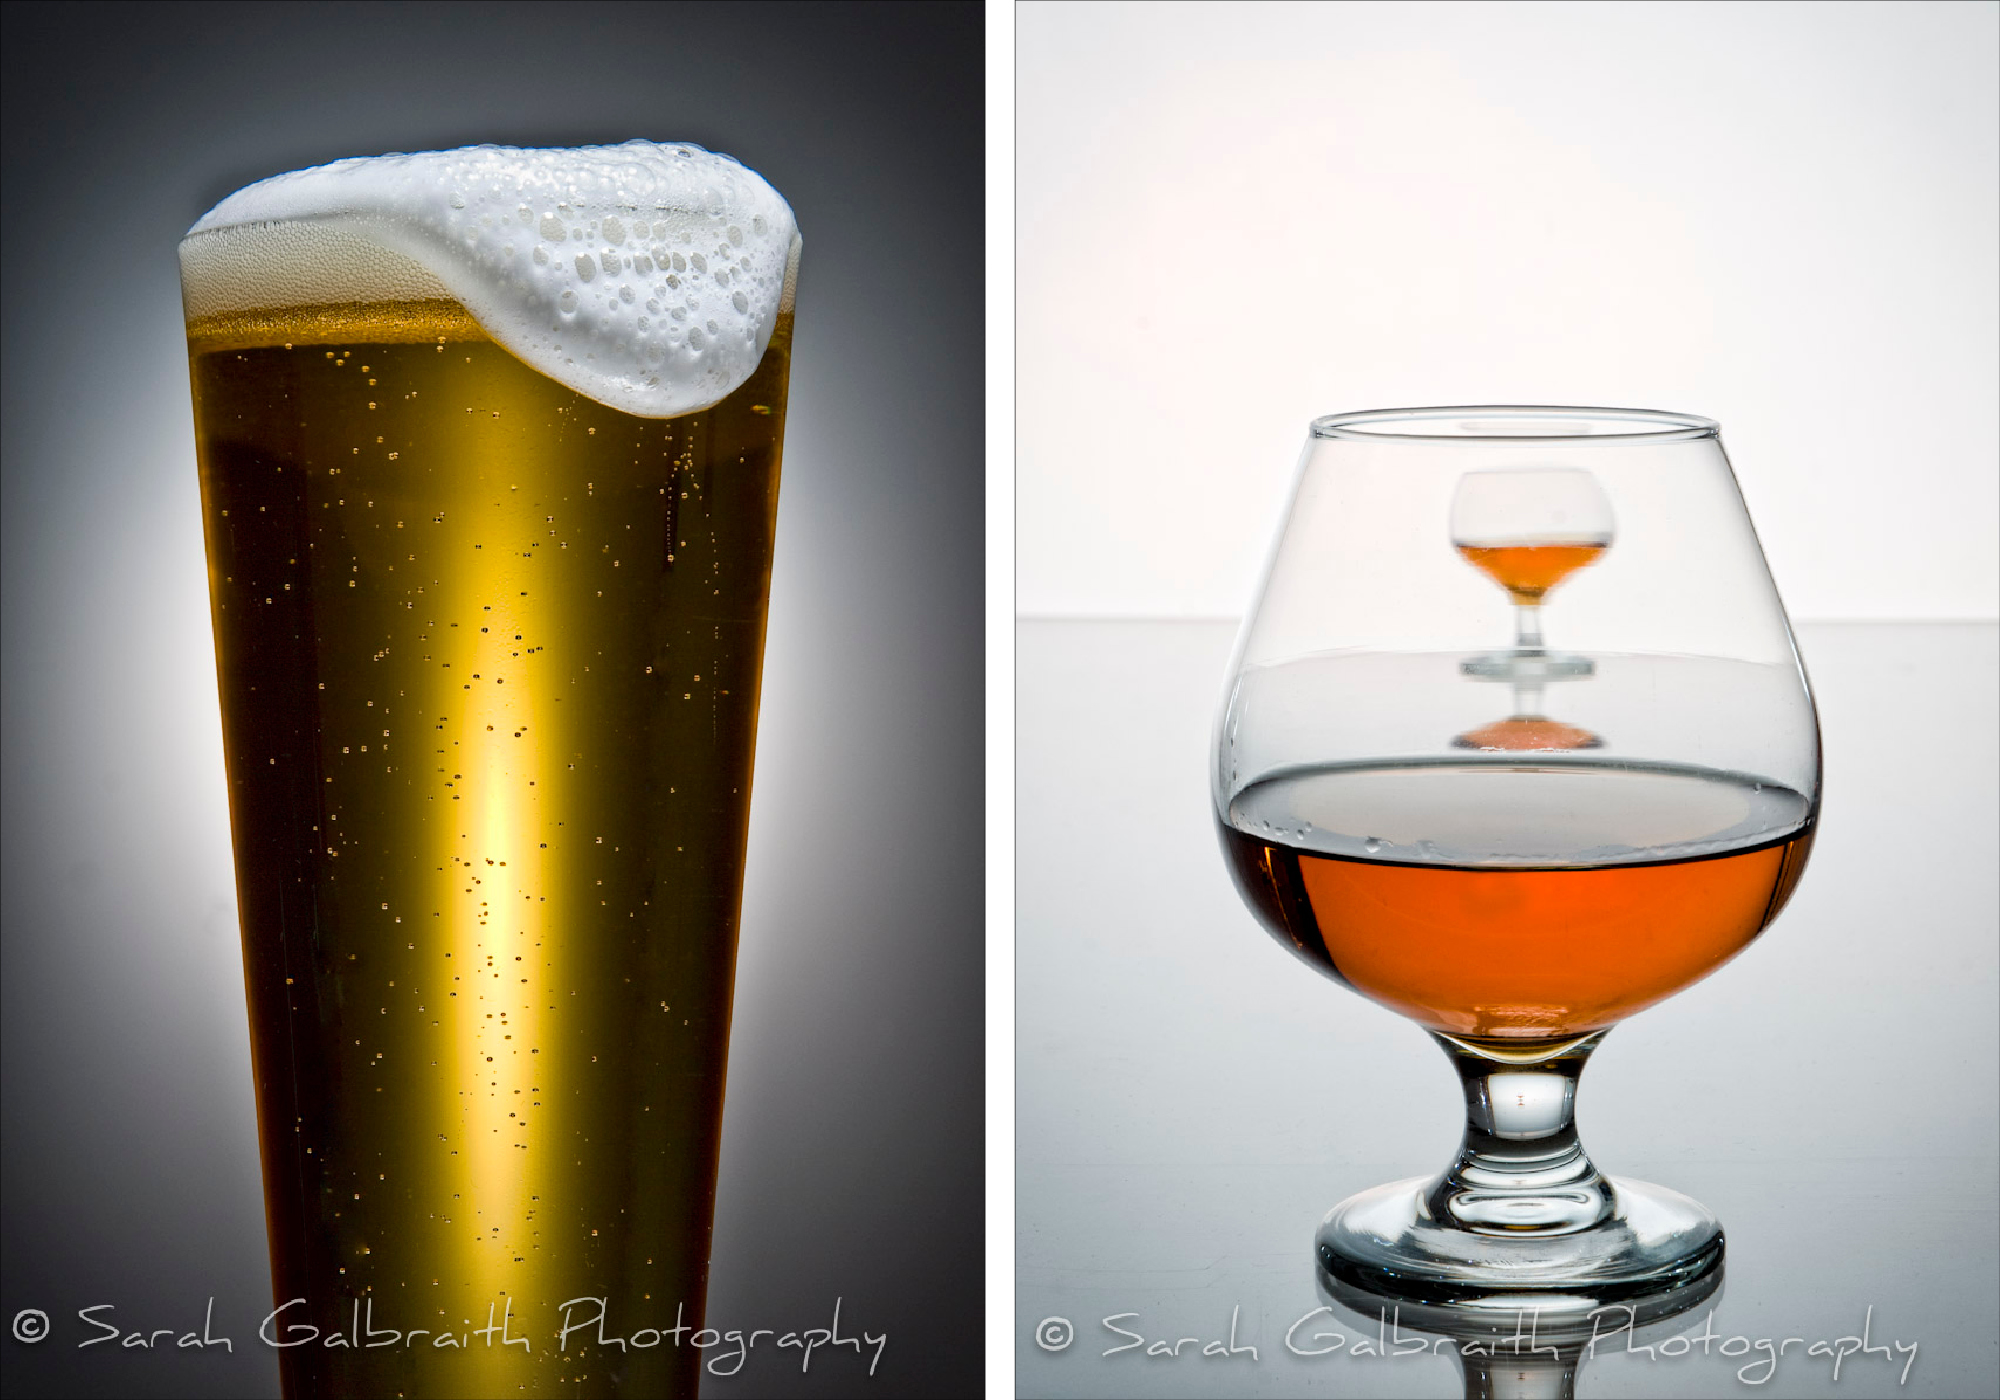 professional product photography Archives - Sarah ...